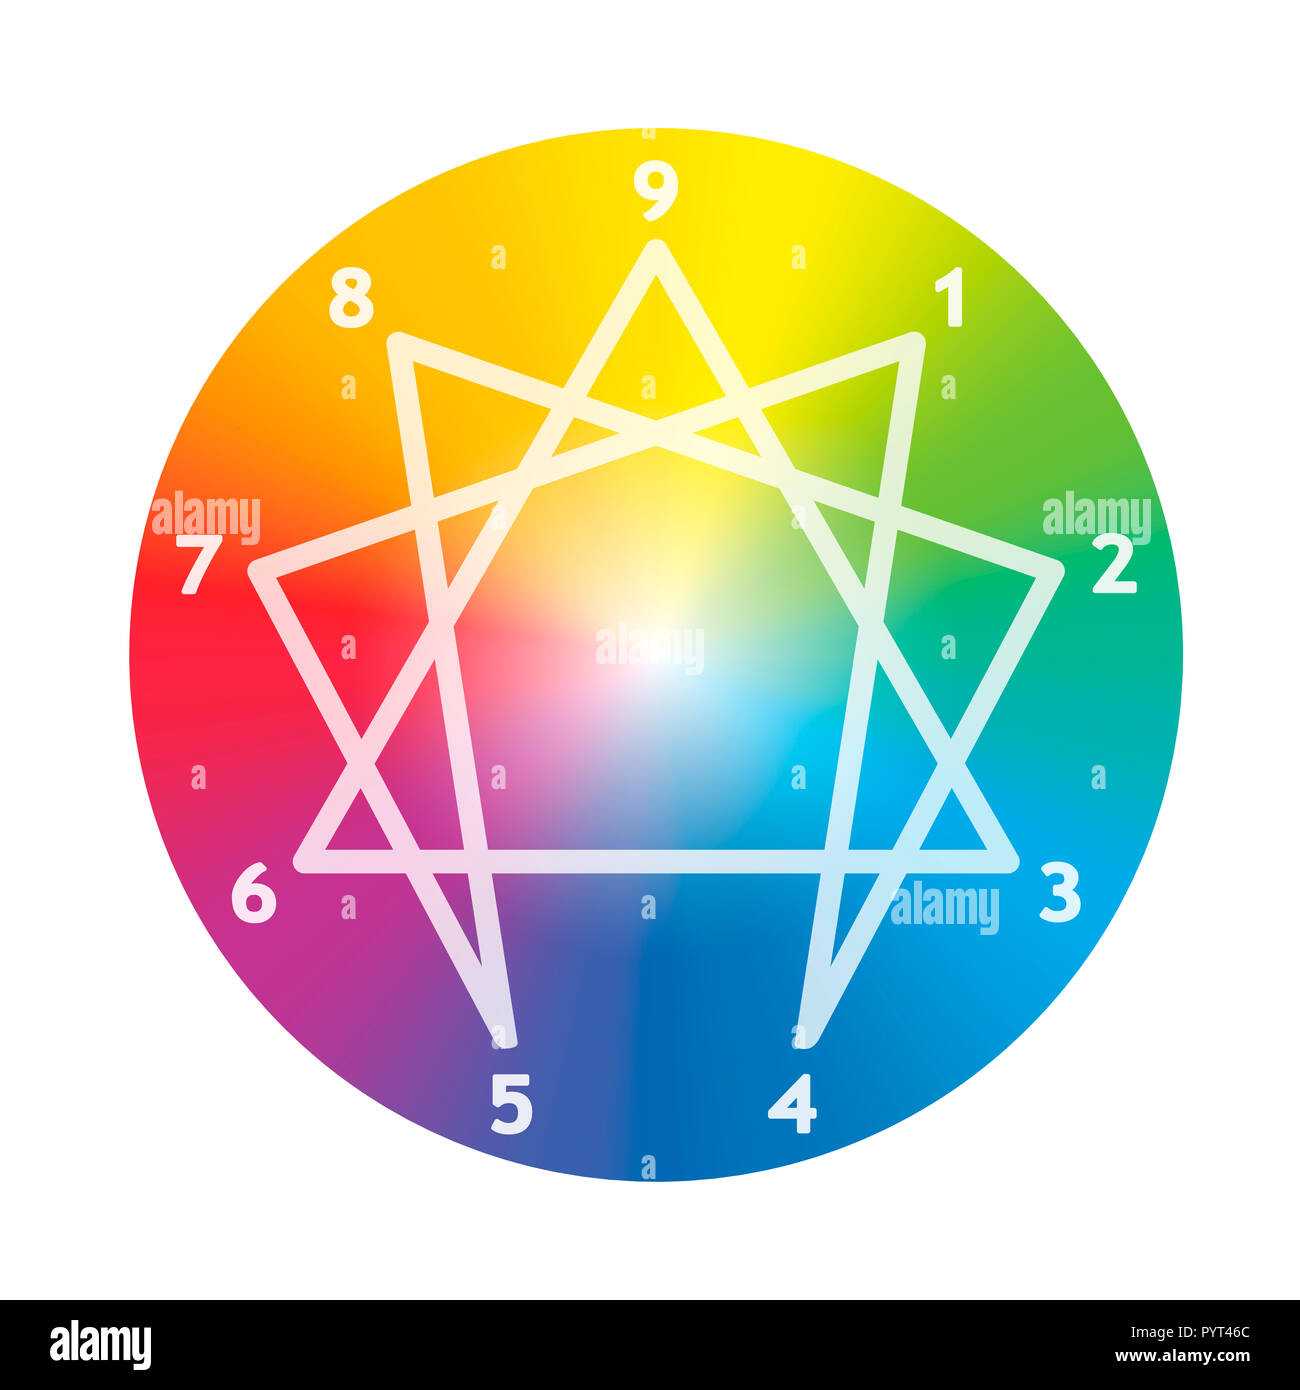 Enneagram Of Personality Symbol With 9 Individual Types Of Characteristic Role Rainbow Colored Circle